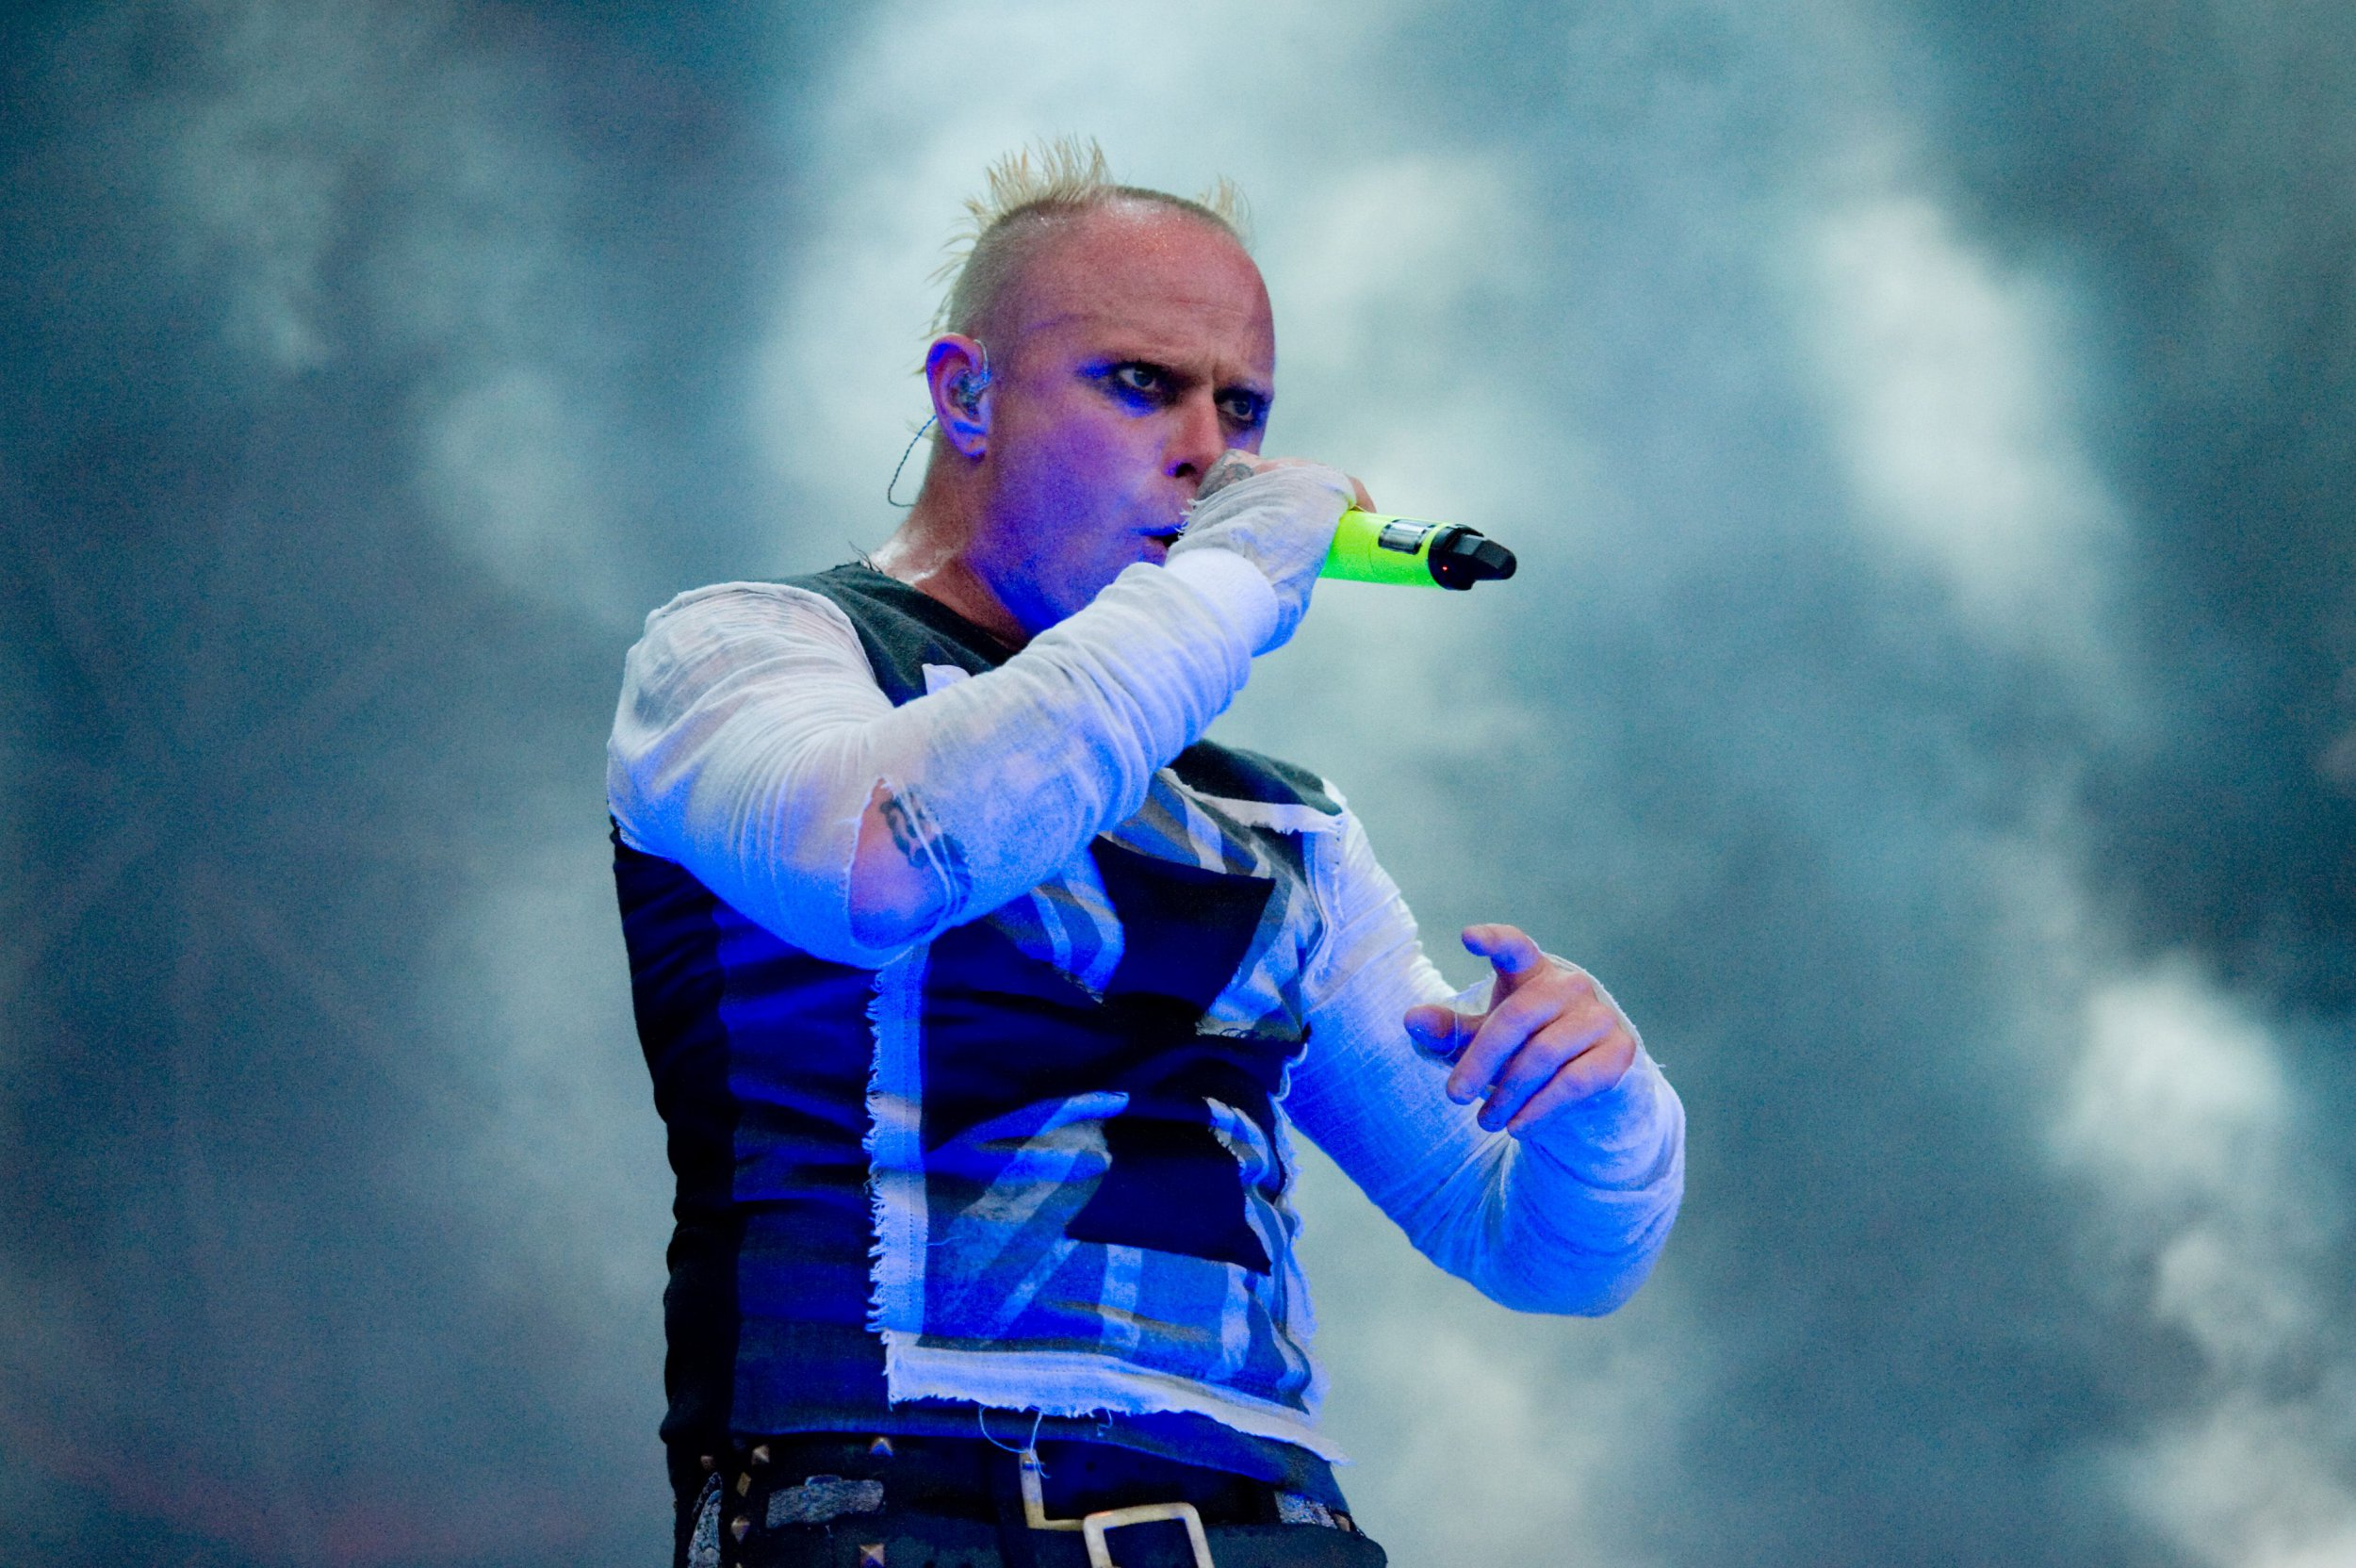 Keith Flint 'put his home up for sale days before death' after marriage split left him 'depressed'